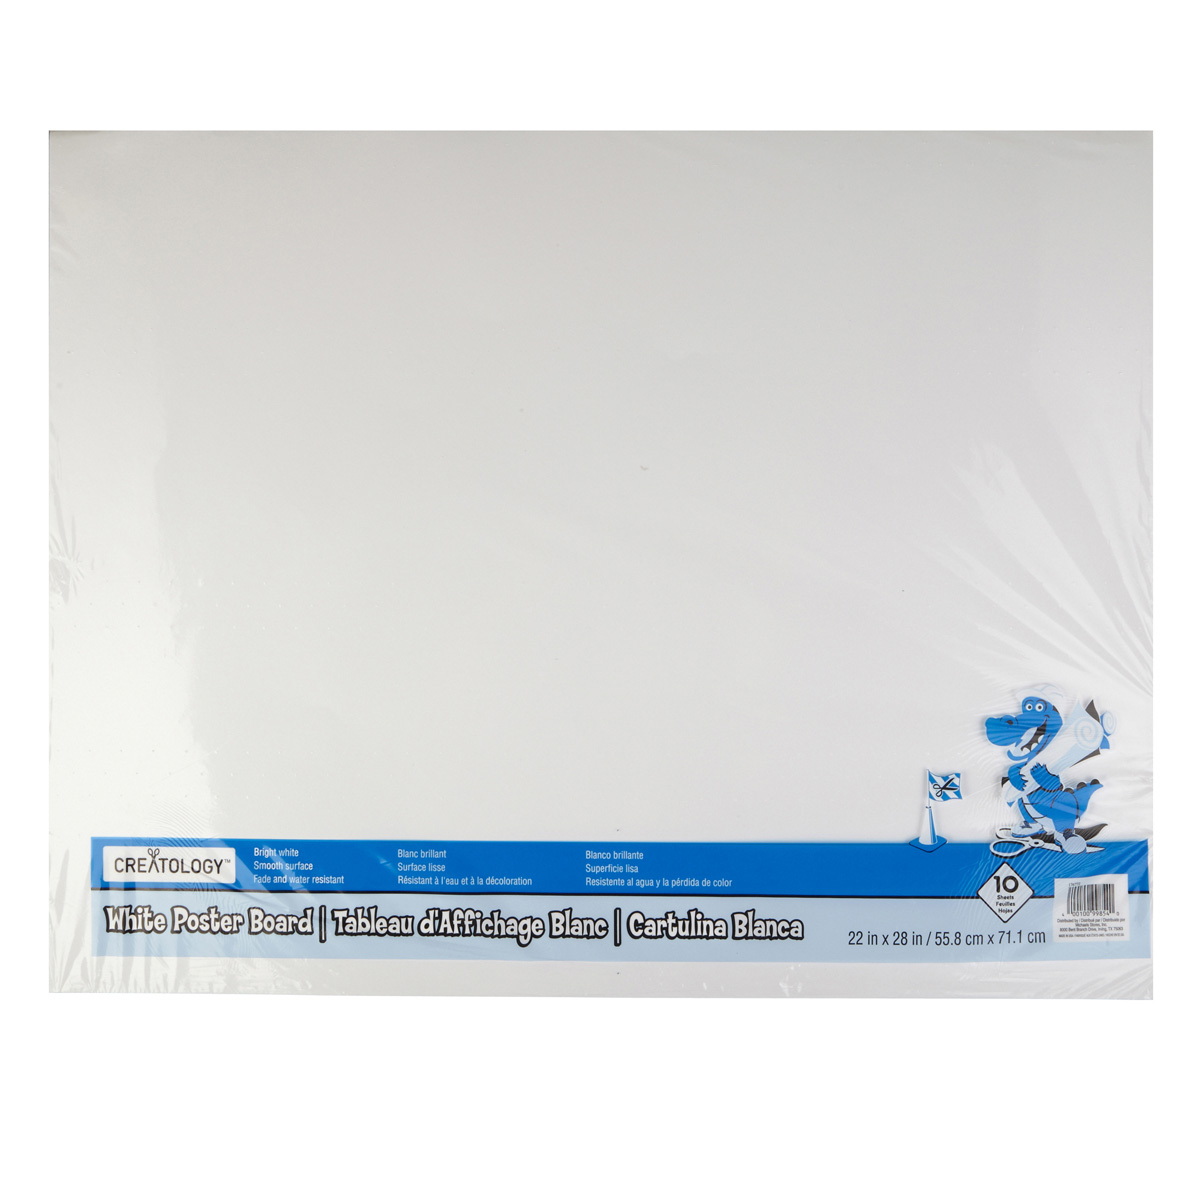 Creatology White Poster Board